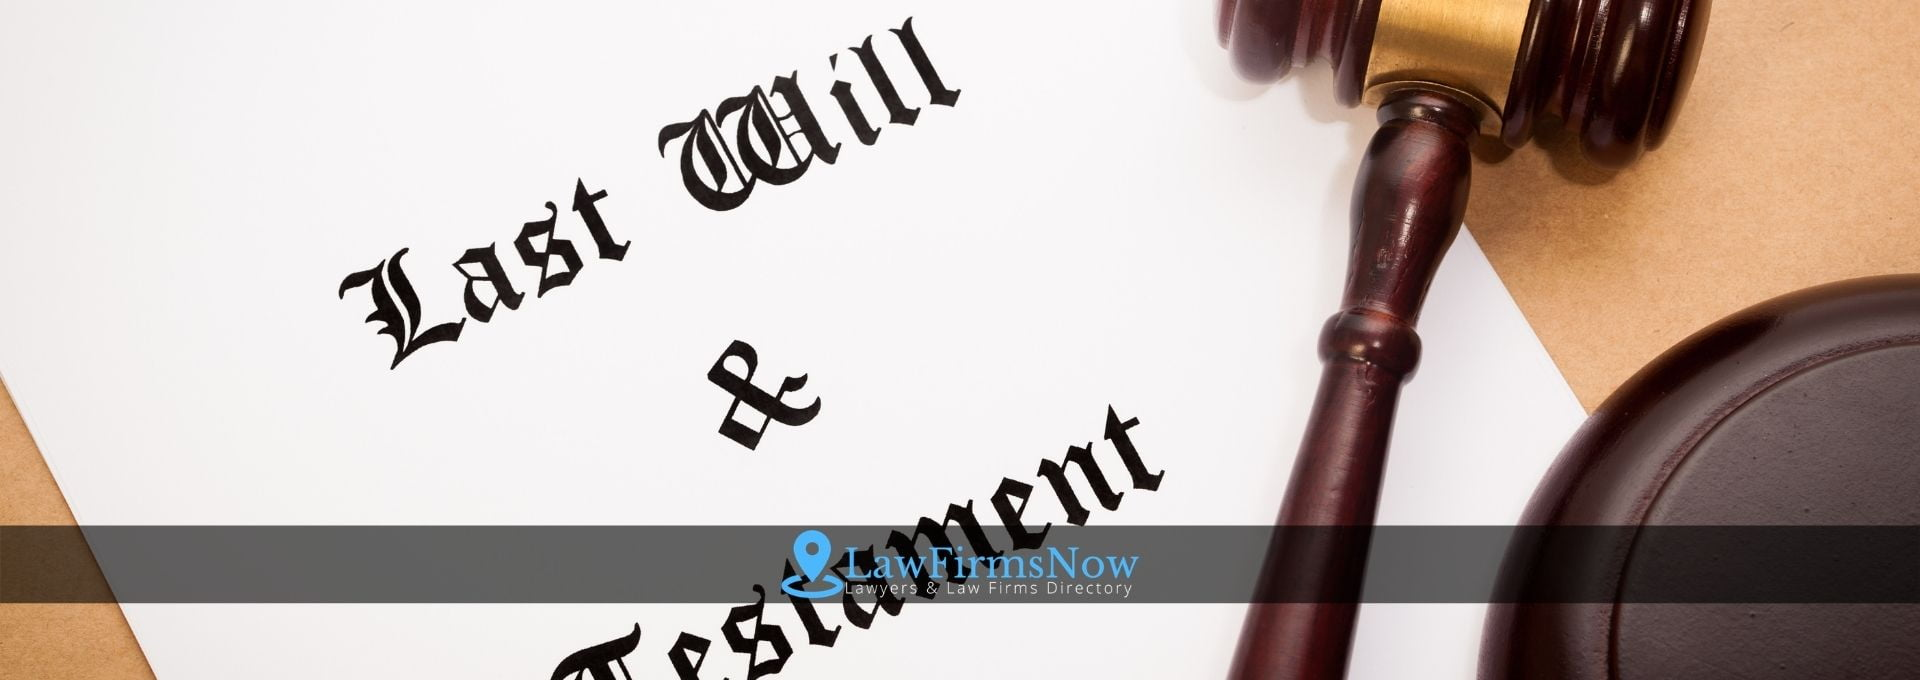 Last wills and statement